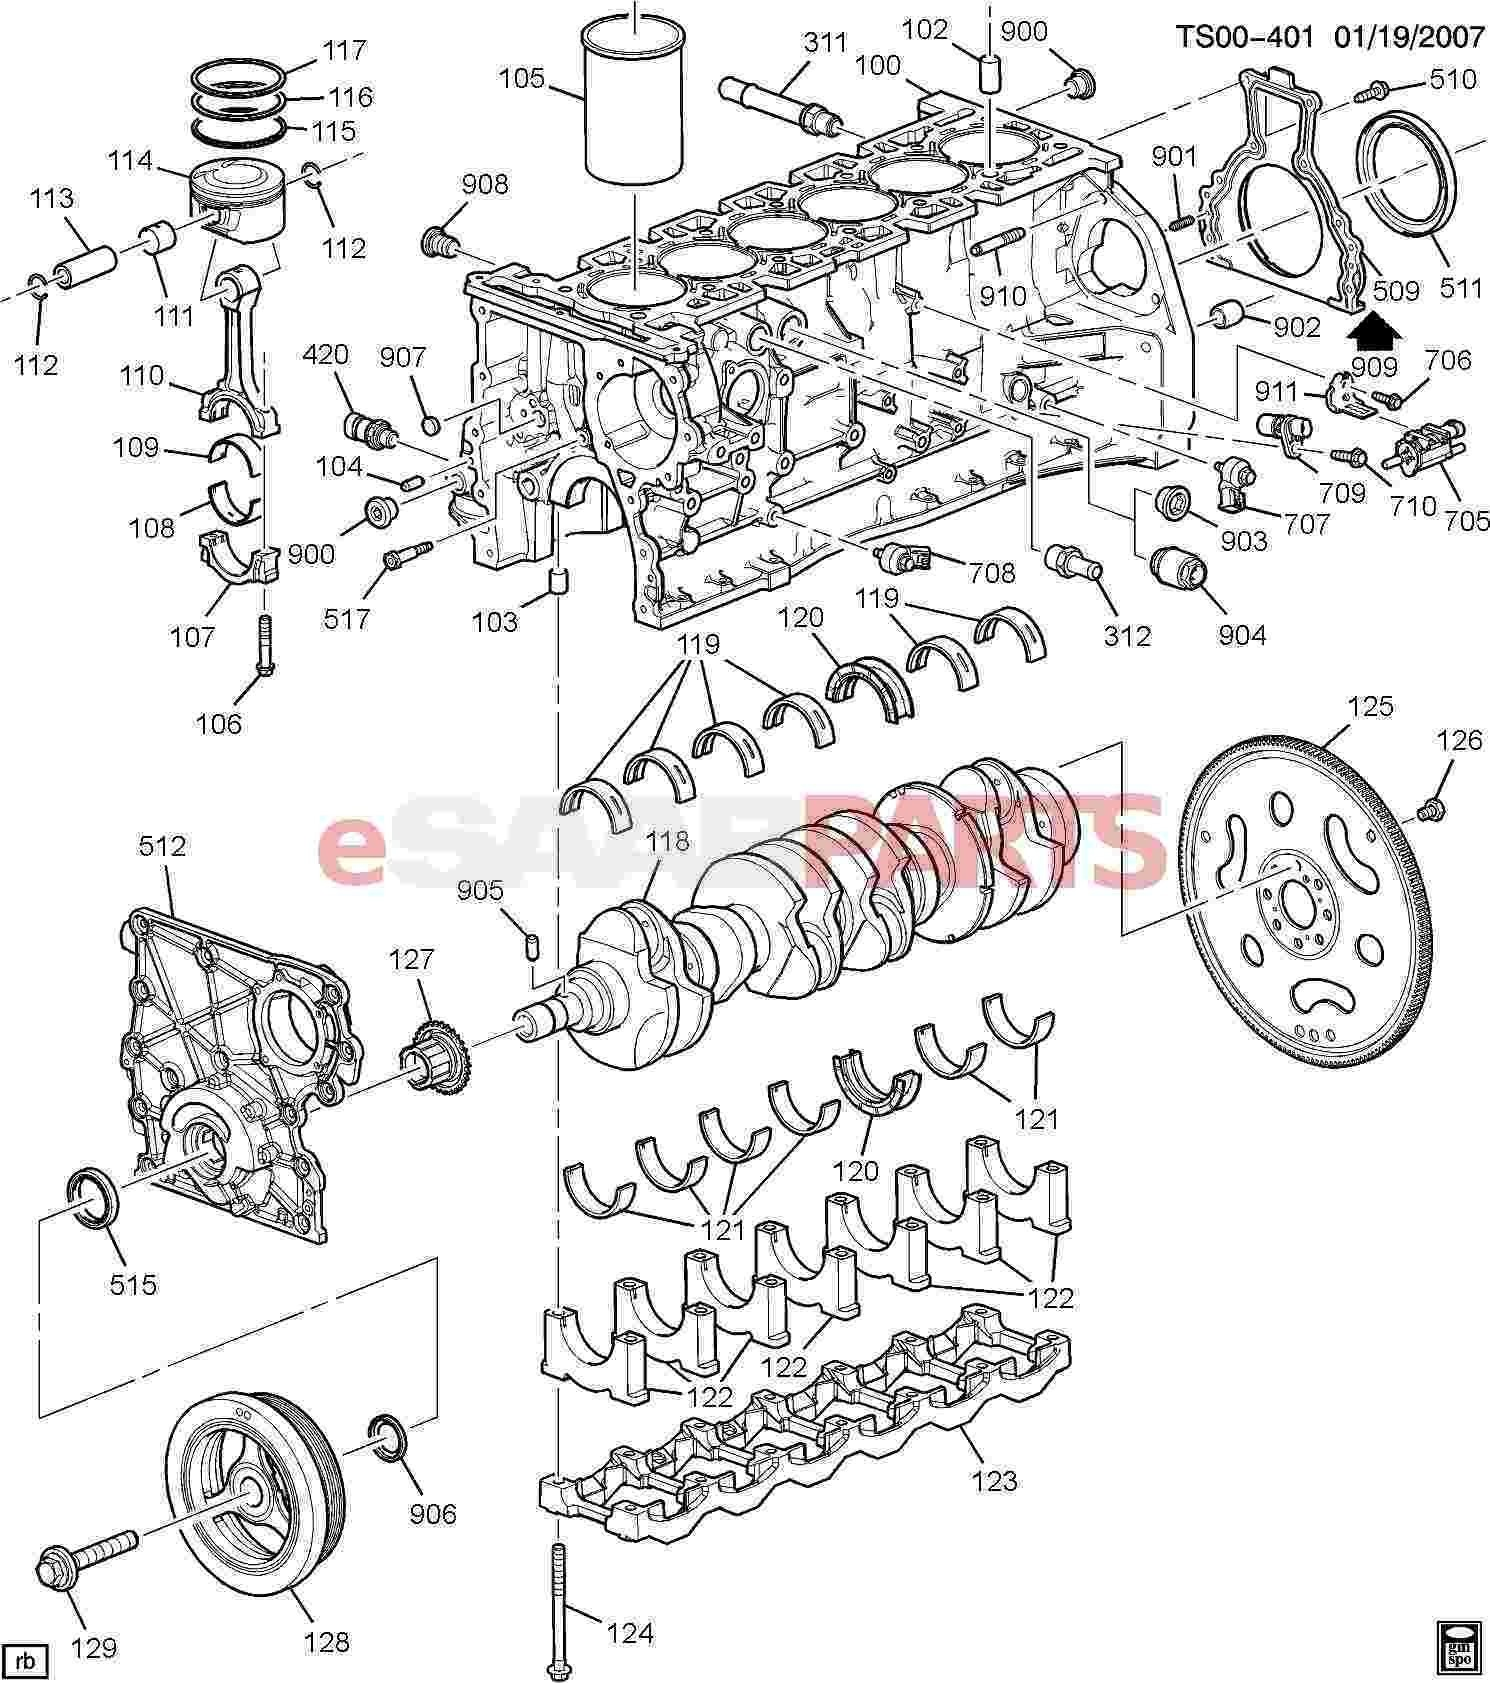 Trailblazer ac wiring diagram chevy blazer engine diagram color castles com chevy  trailblazer jpg 1490x1683 2002